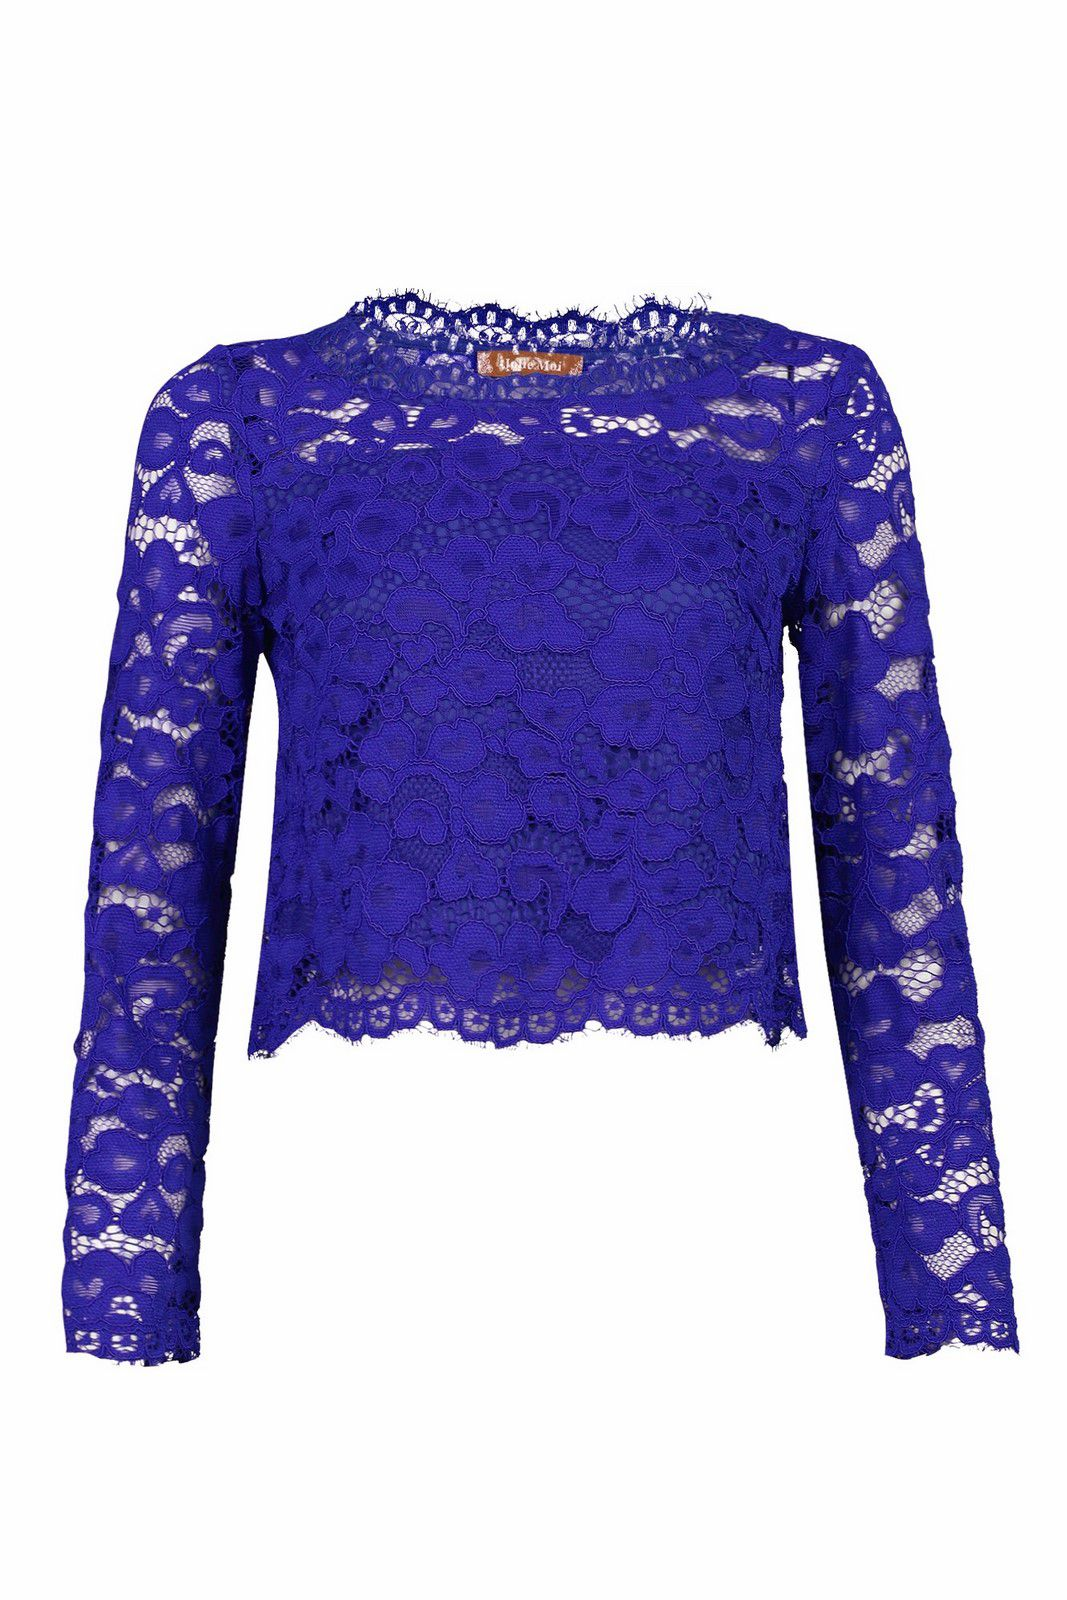 Jolie Moi Scalloped Flare Sleeve Lace Top, Royal Blue